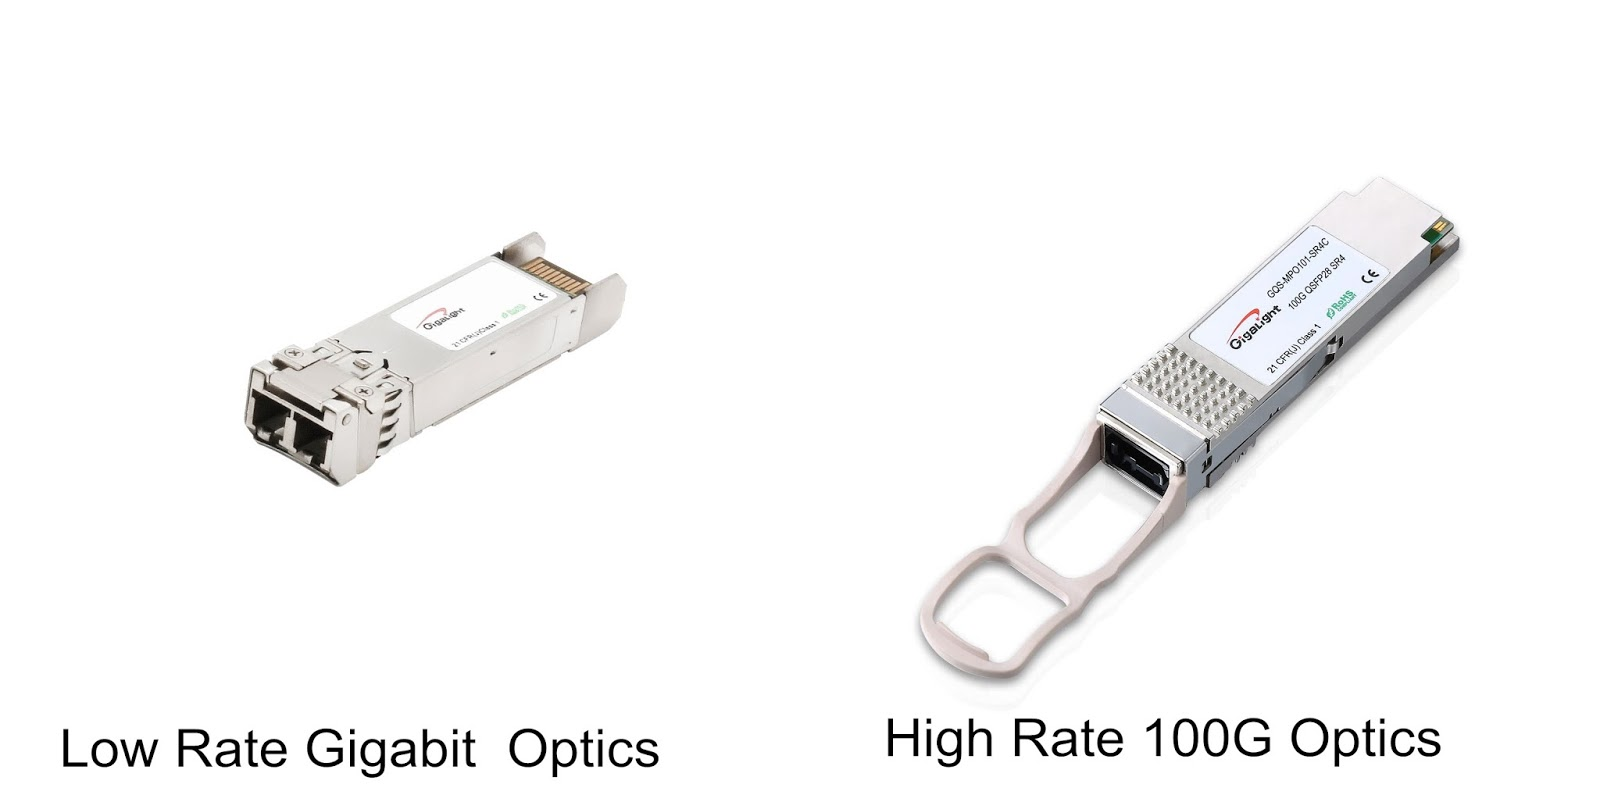 low rate optics vs. high rate optics